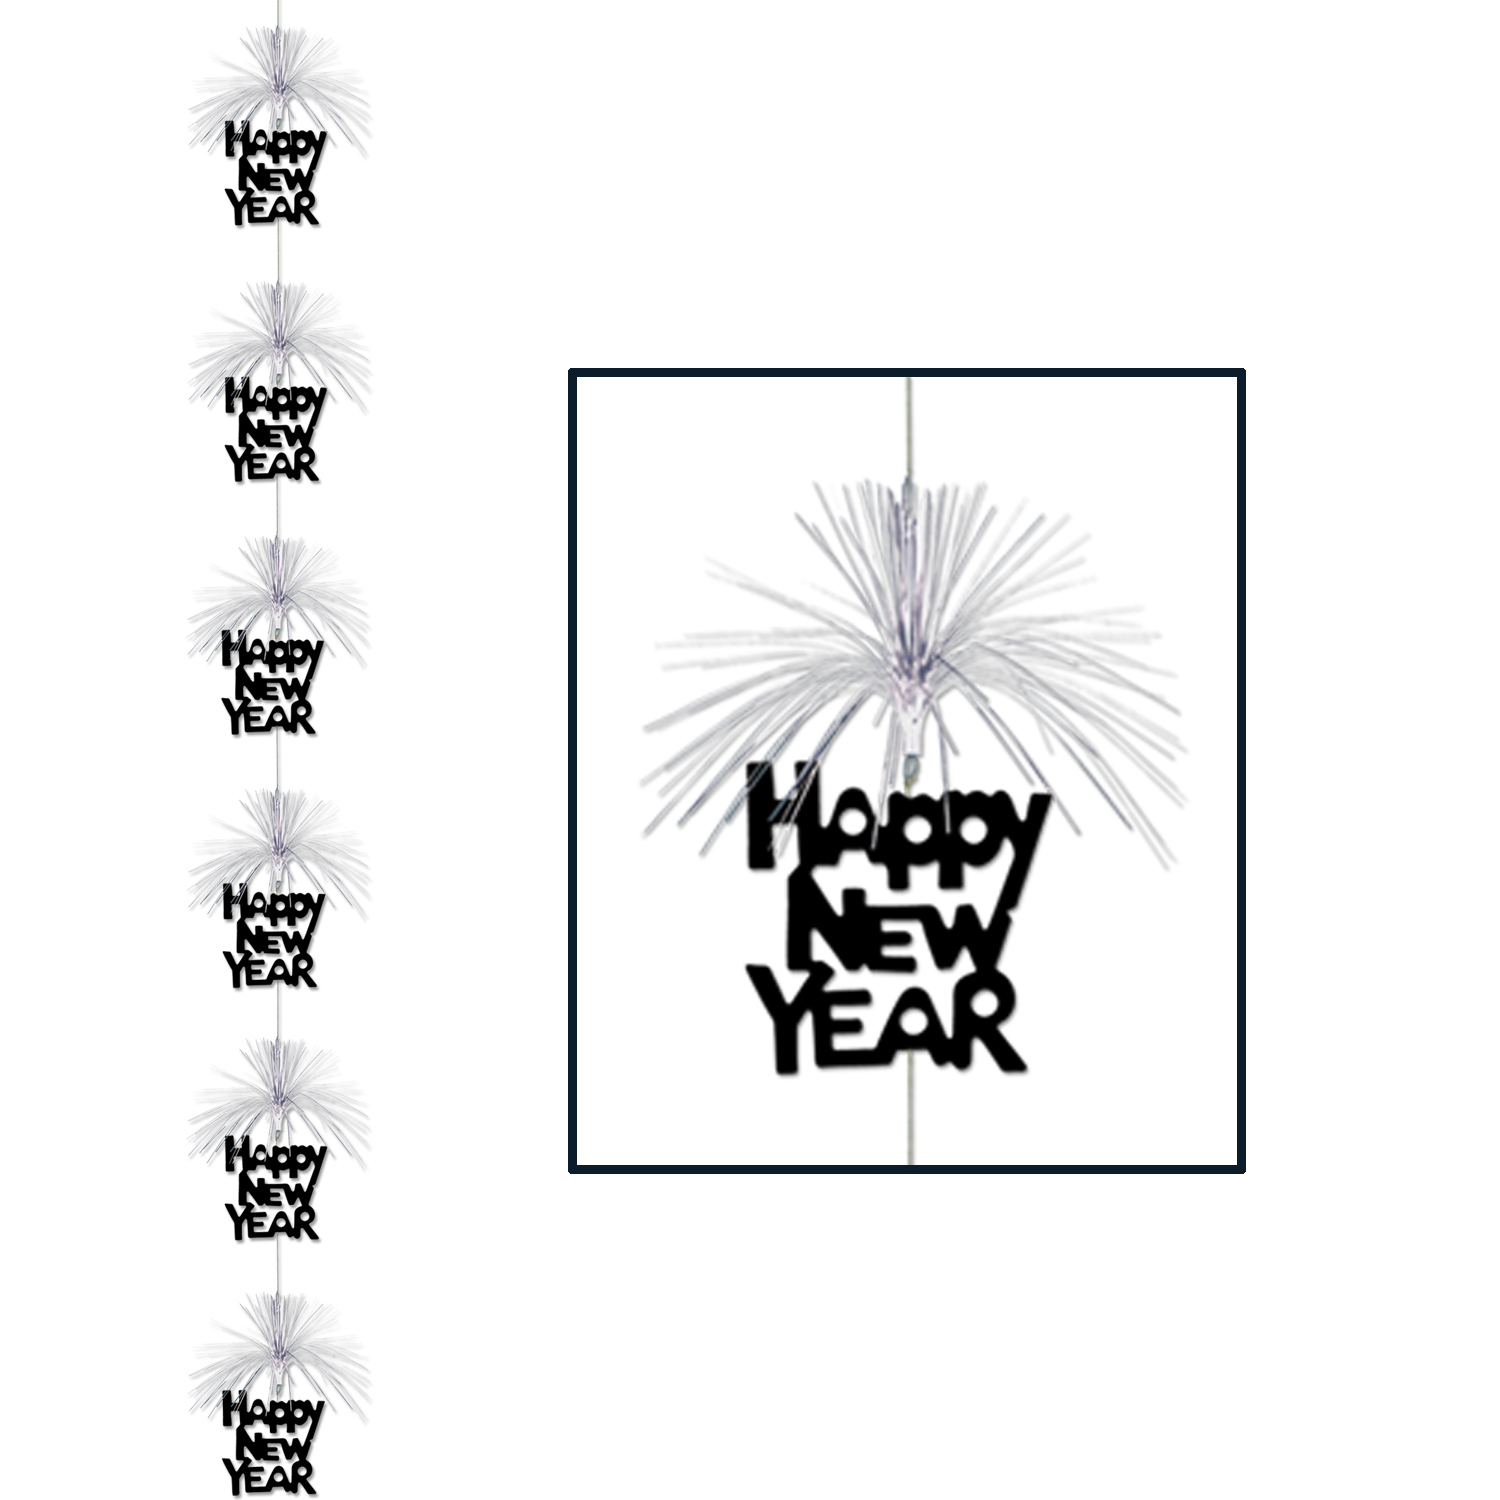 Happy New Year Firework Stringer (Pack of 12) Stringers, Hanging Decor, Fireworks, Shine, NYE, Party, Party Decorations, Bulk, Inexpensive, Favors